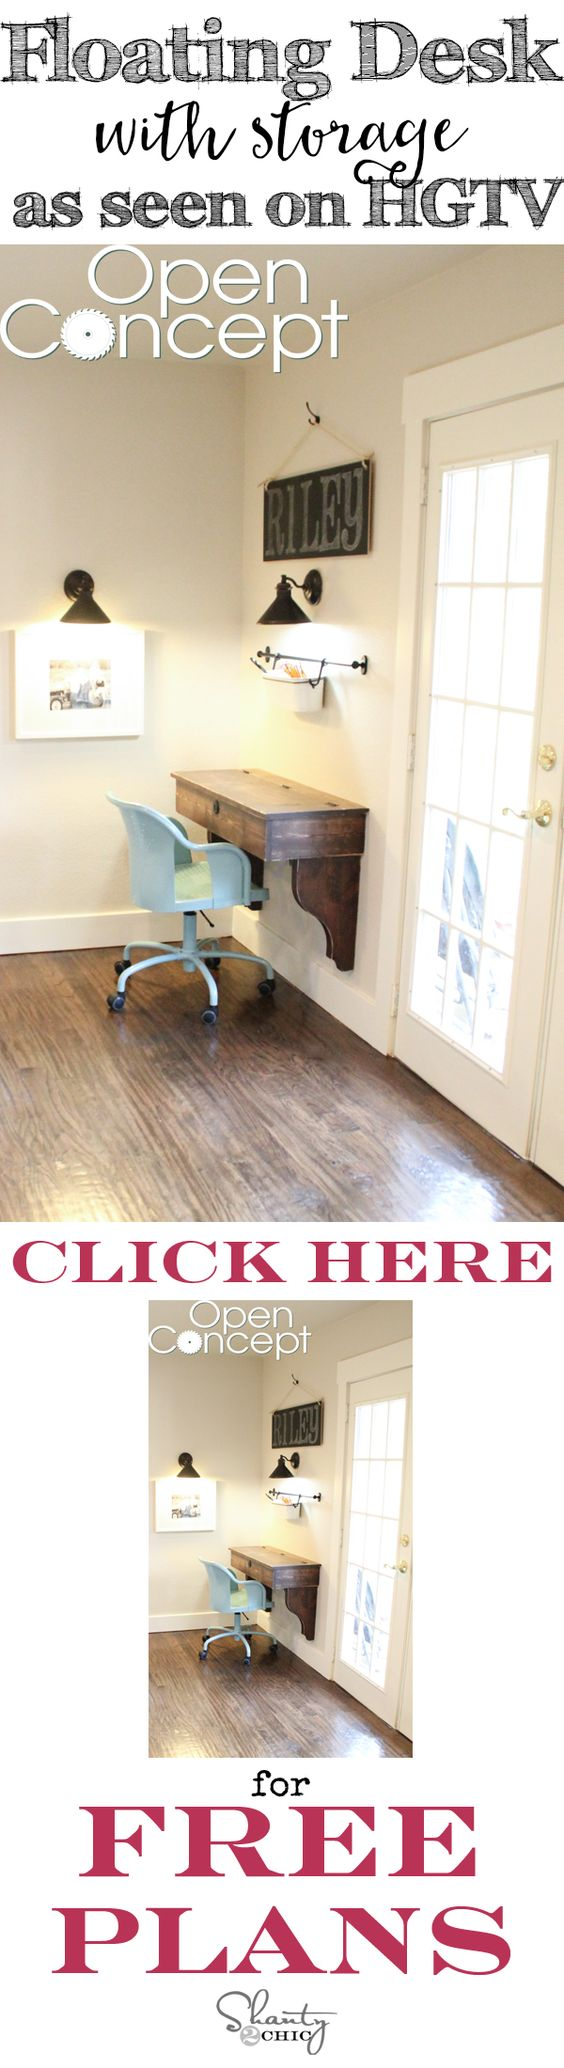 Pinterest the world s catalog of ideas for Build your own floating desk